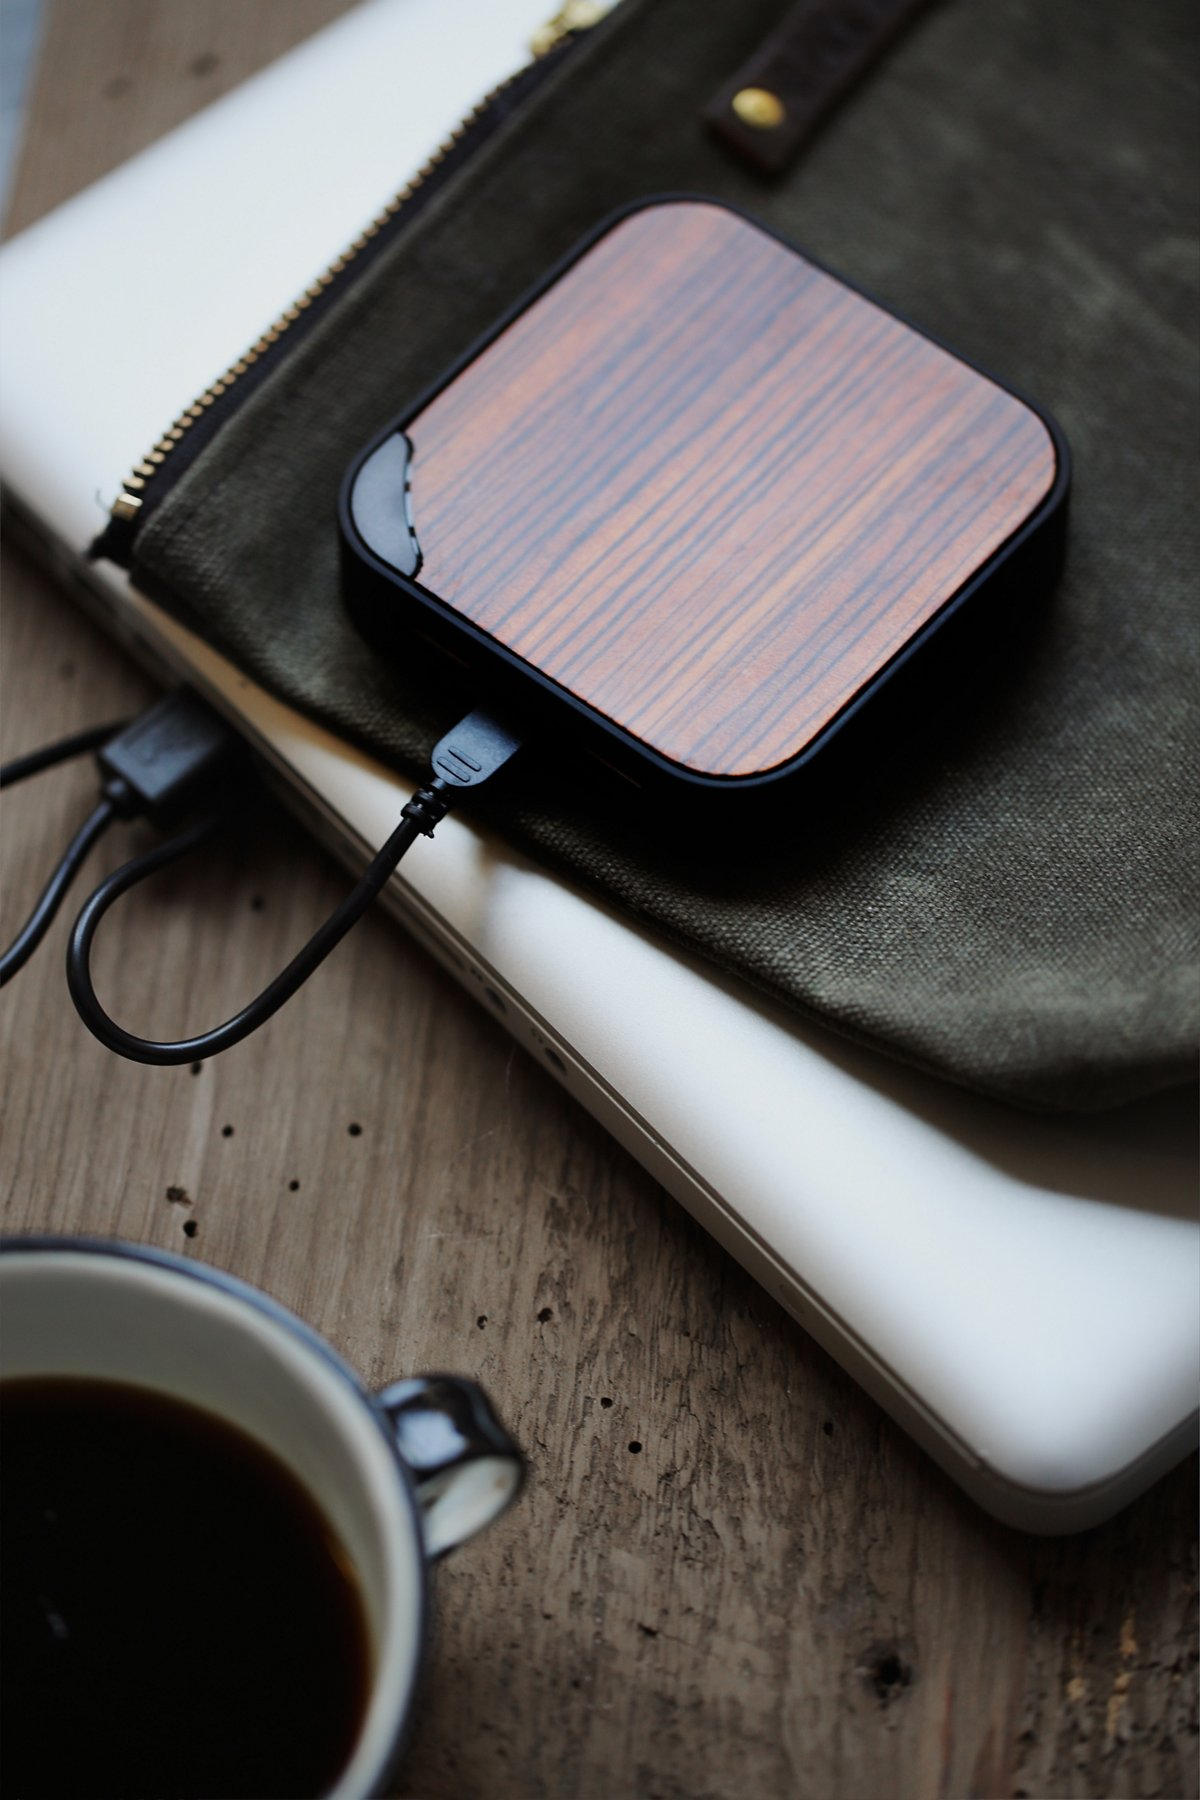 Dual Power Bank Charger